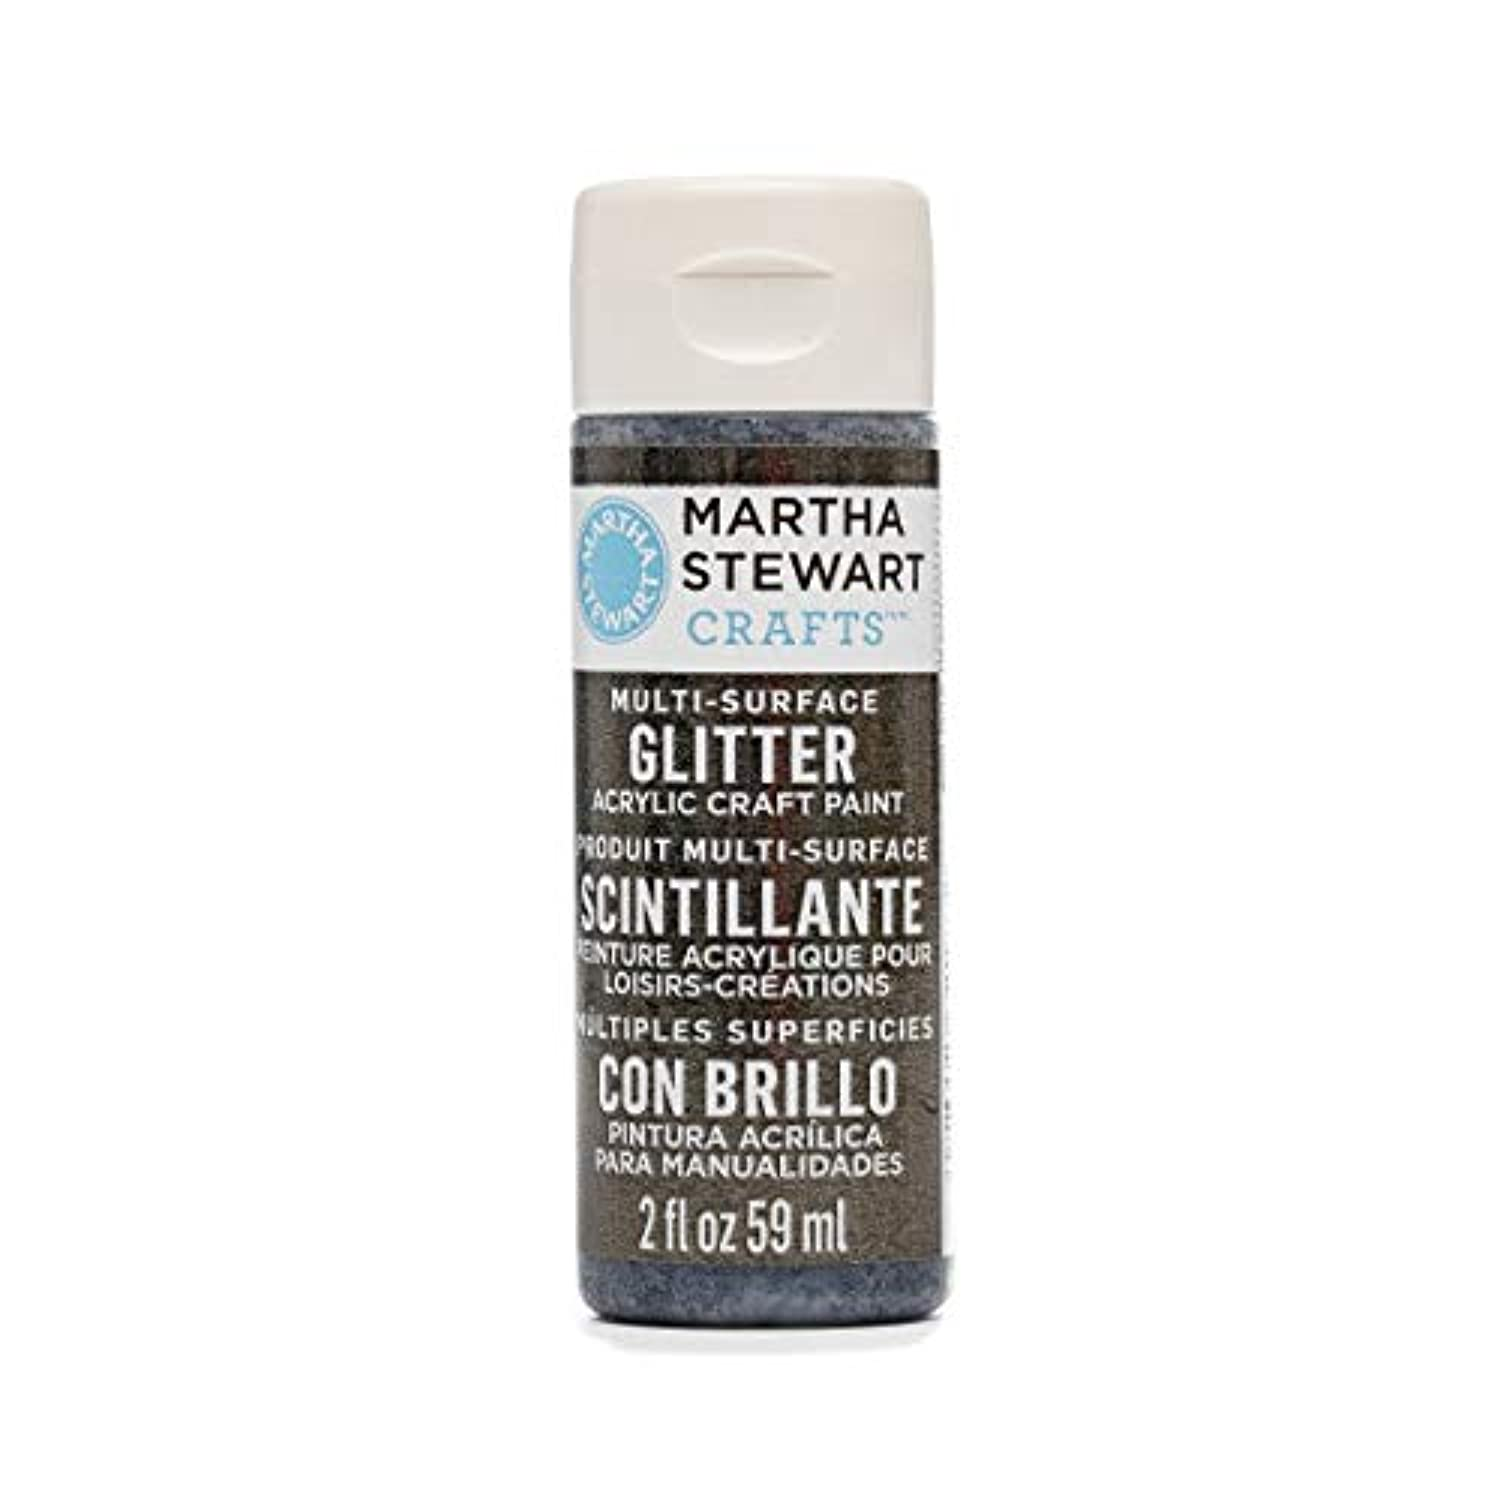 Martha Stewart Crafts Multi-Surface Glitter Acrylic Craft Paint in Assorted Colors (2-Ounce), 32183 Onyx